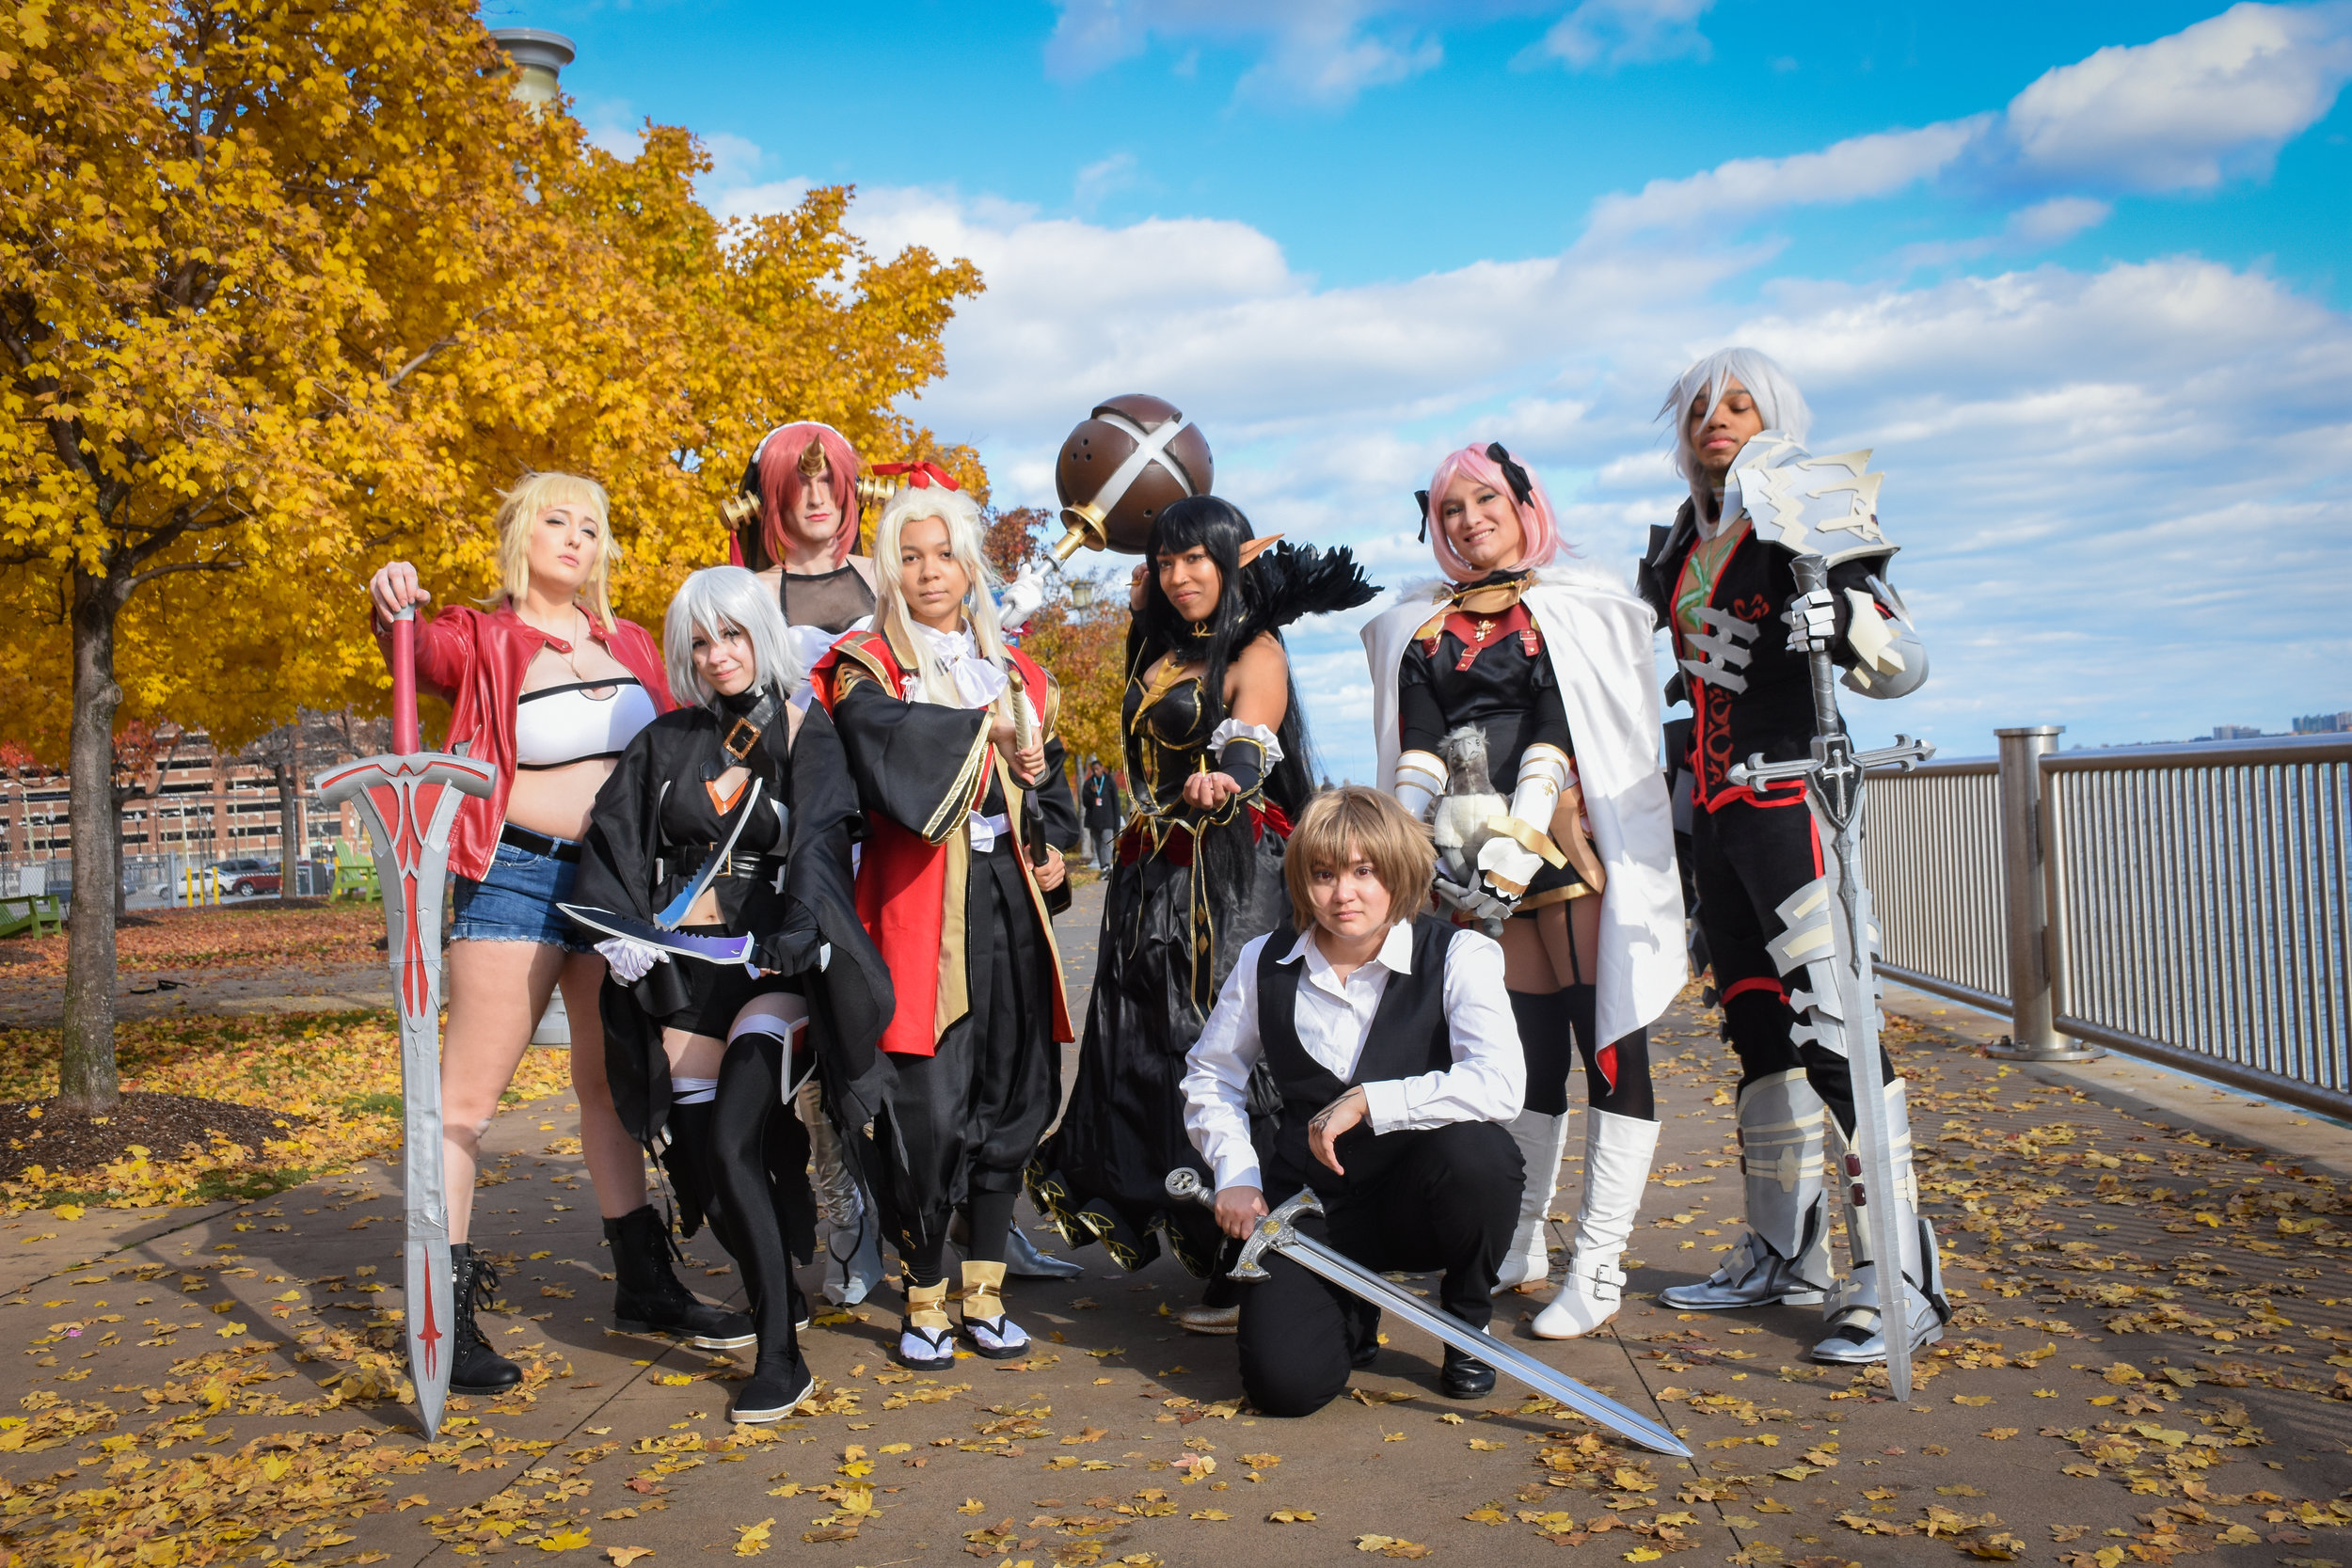 Mordred:  candlewaxcosplay  Jack:  holy.grail  Shiro Amakusa:  emma_the_fantastic   Semiramis:  nekoyasha  Seig:  tomoyoichijouji     Astolfo:  nihopalaoa     Seigfried:  fang_soul